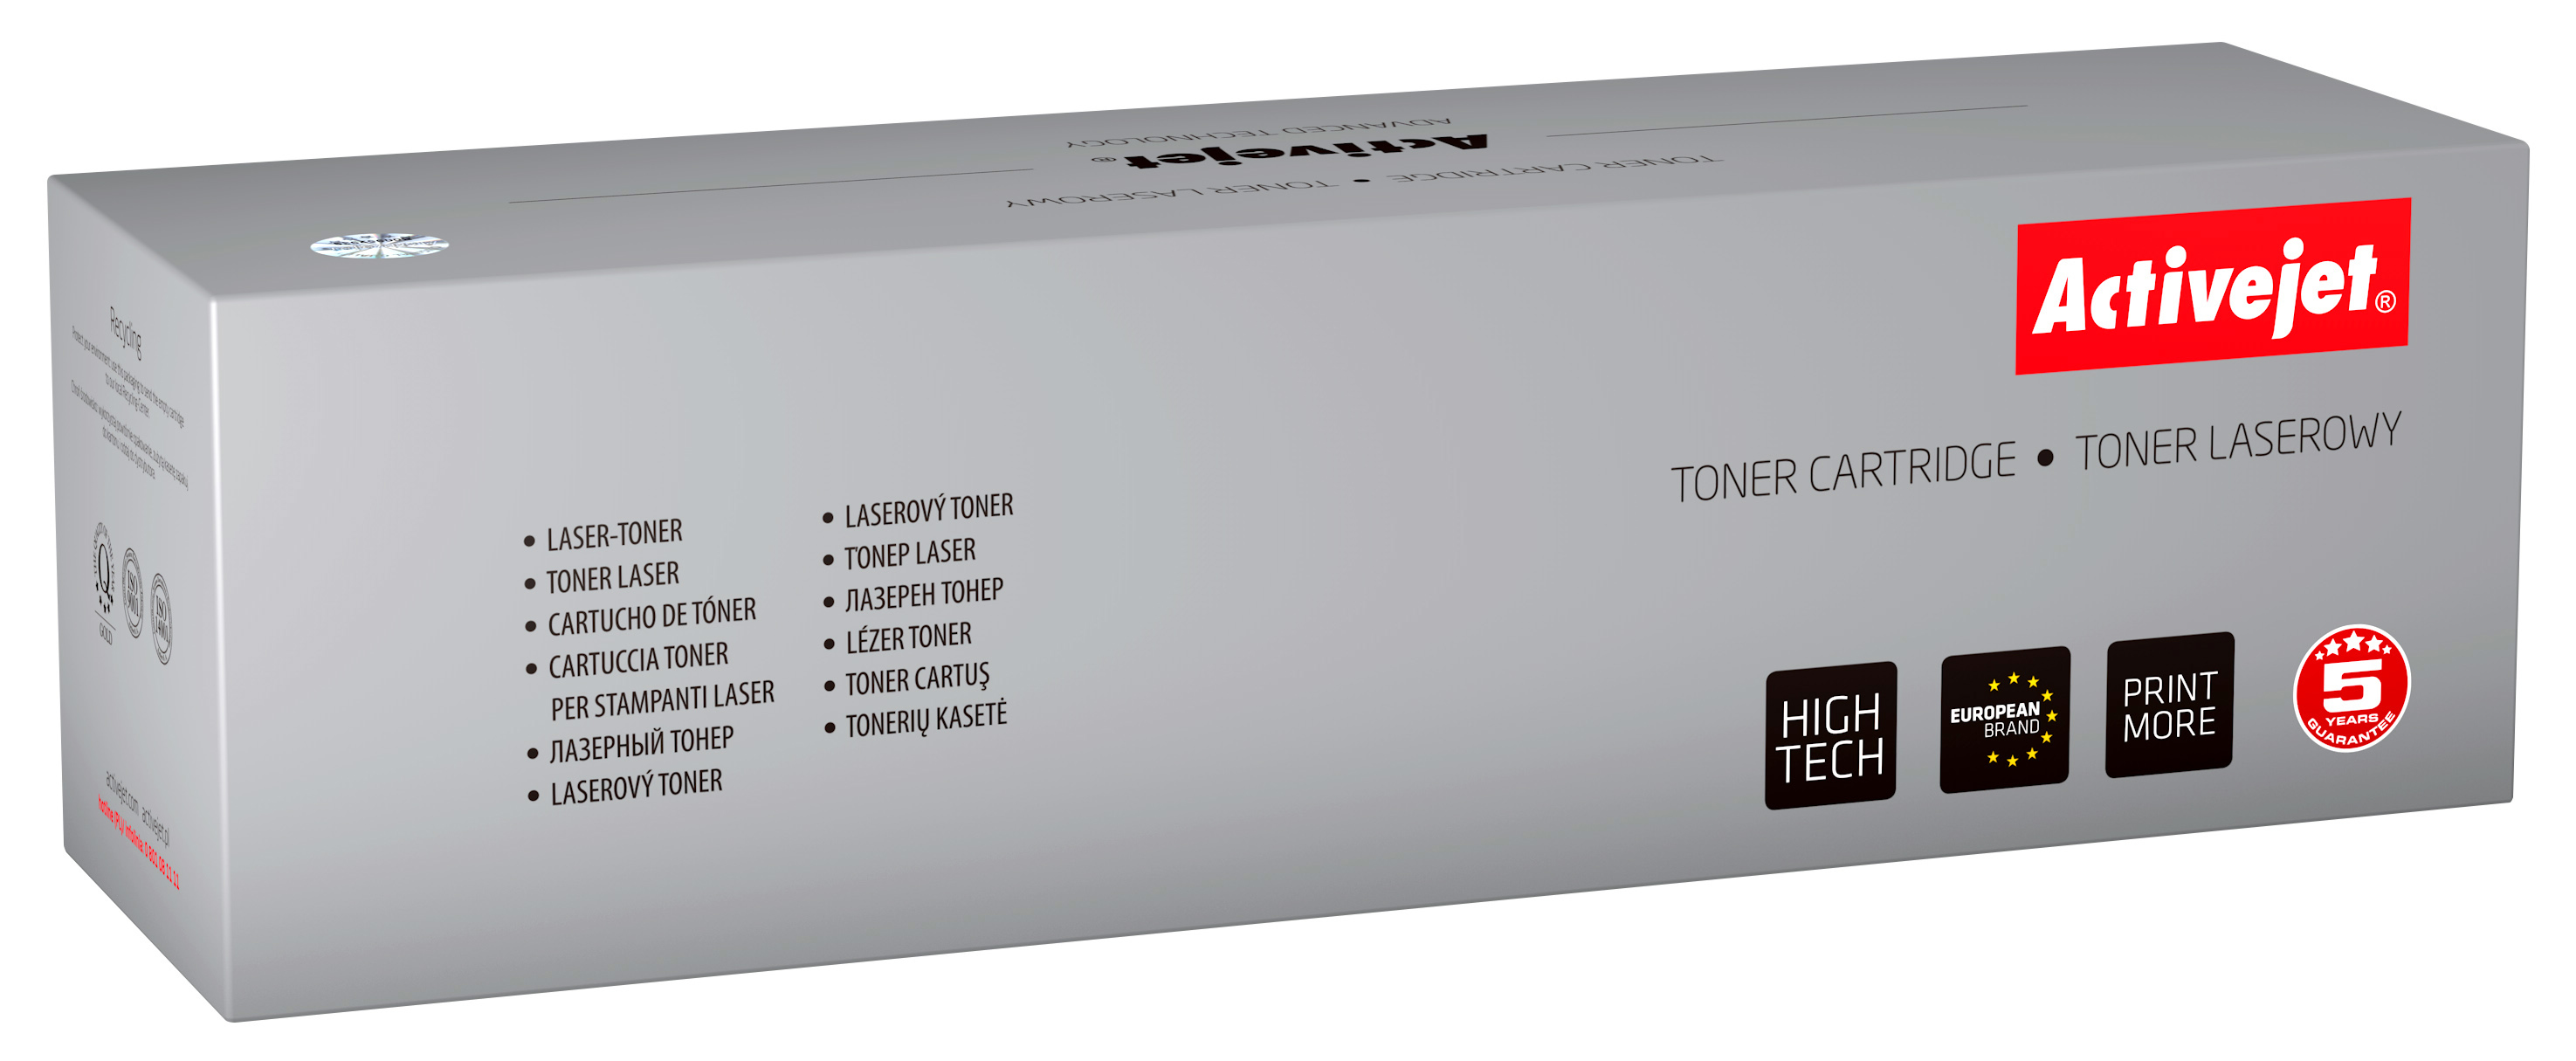 Activejet toner do Samsung MLT-D201L new ATS-201NX